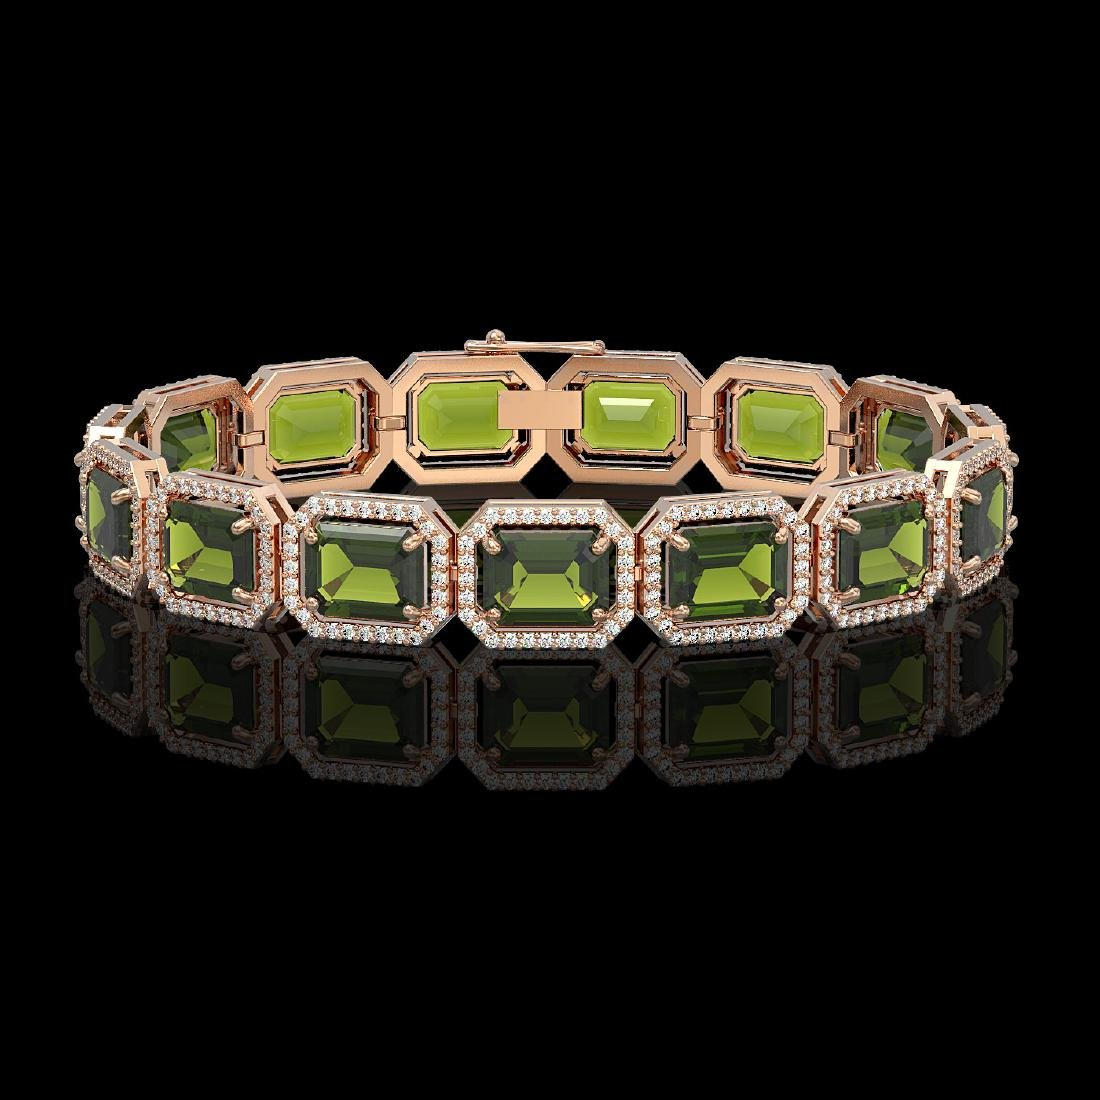 36.51 CTW Tourmaline & Diamond Halo Bracelet 10K Rose